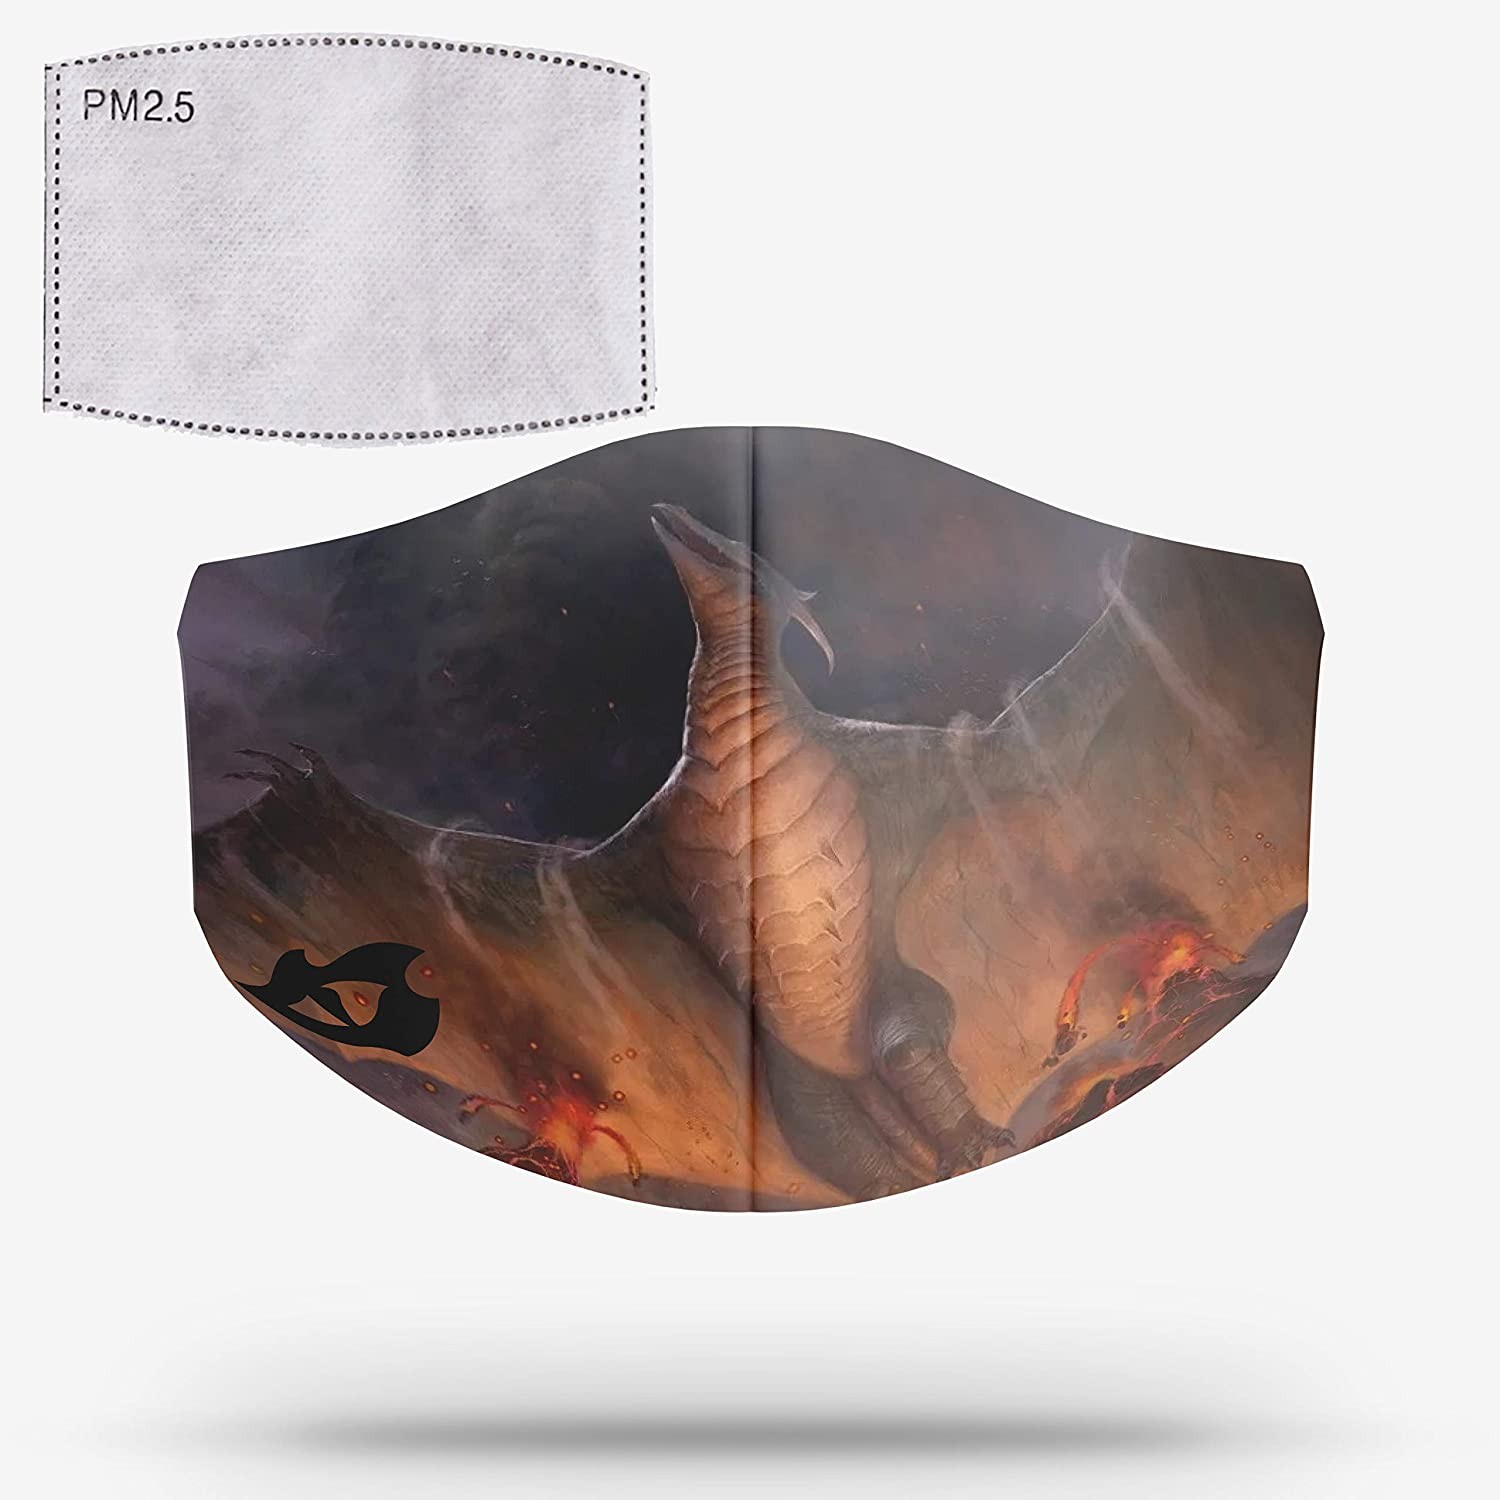 COOLINKO Magic Designer Face Covering with Activated Carbon PM2.5 Filter - Washable Reusable Fashion Cotton Mouth Head Accessory Mask Inspired Mythic Creature Graphics (#34)